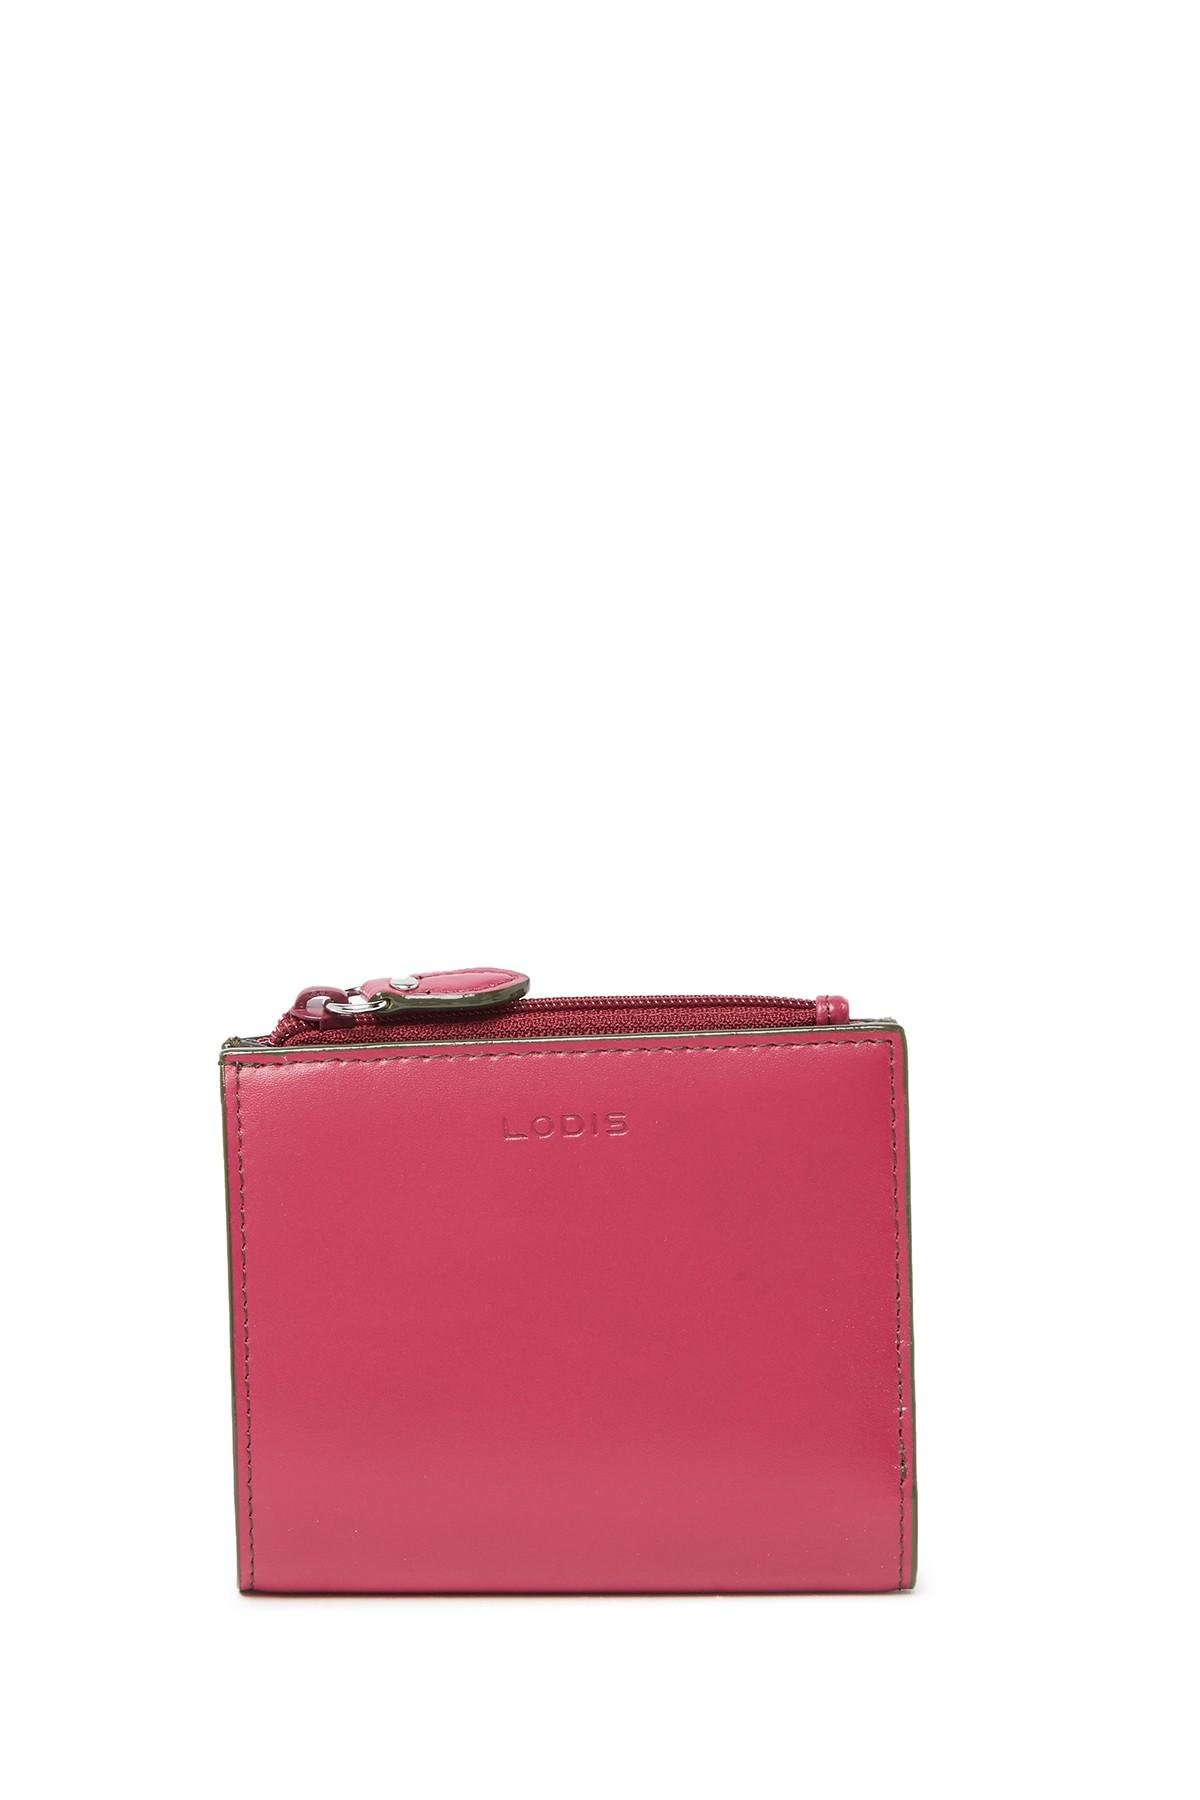 974362d8b9 Lodis. Women's Aldis Rfid Leather Wallet. $56 $27 From Nordstrom Rack